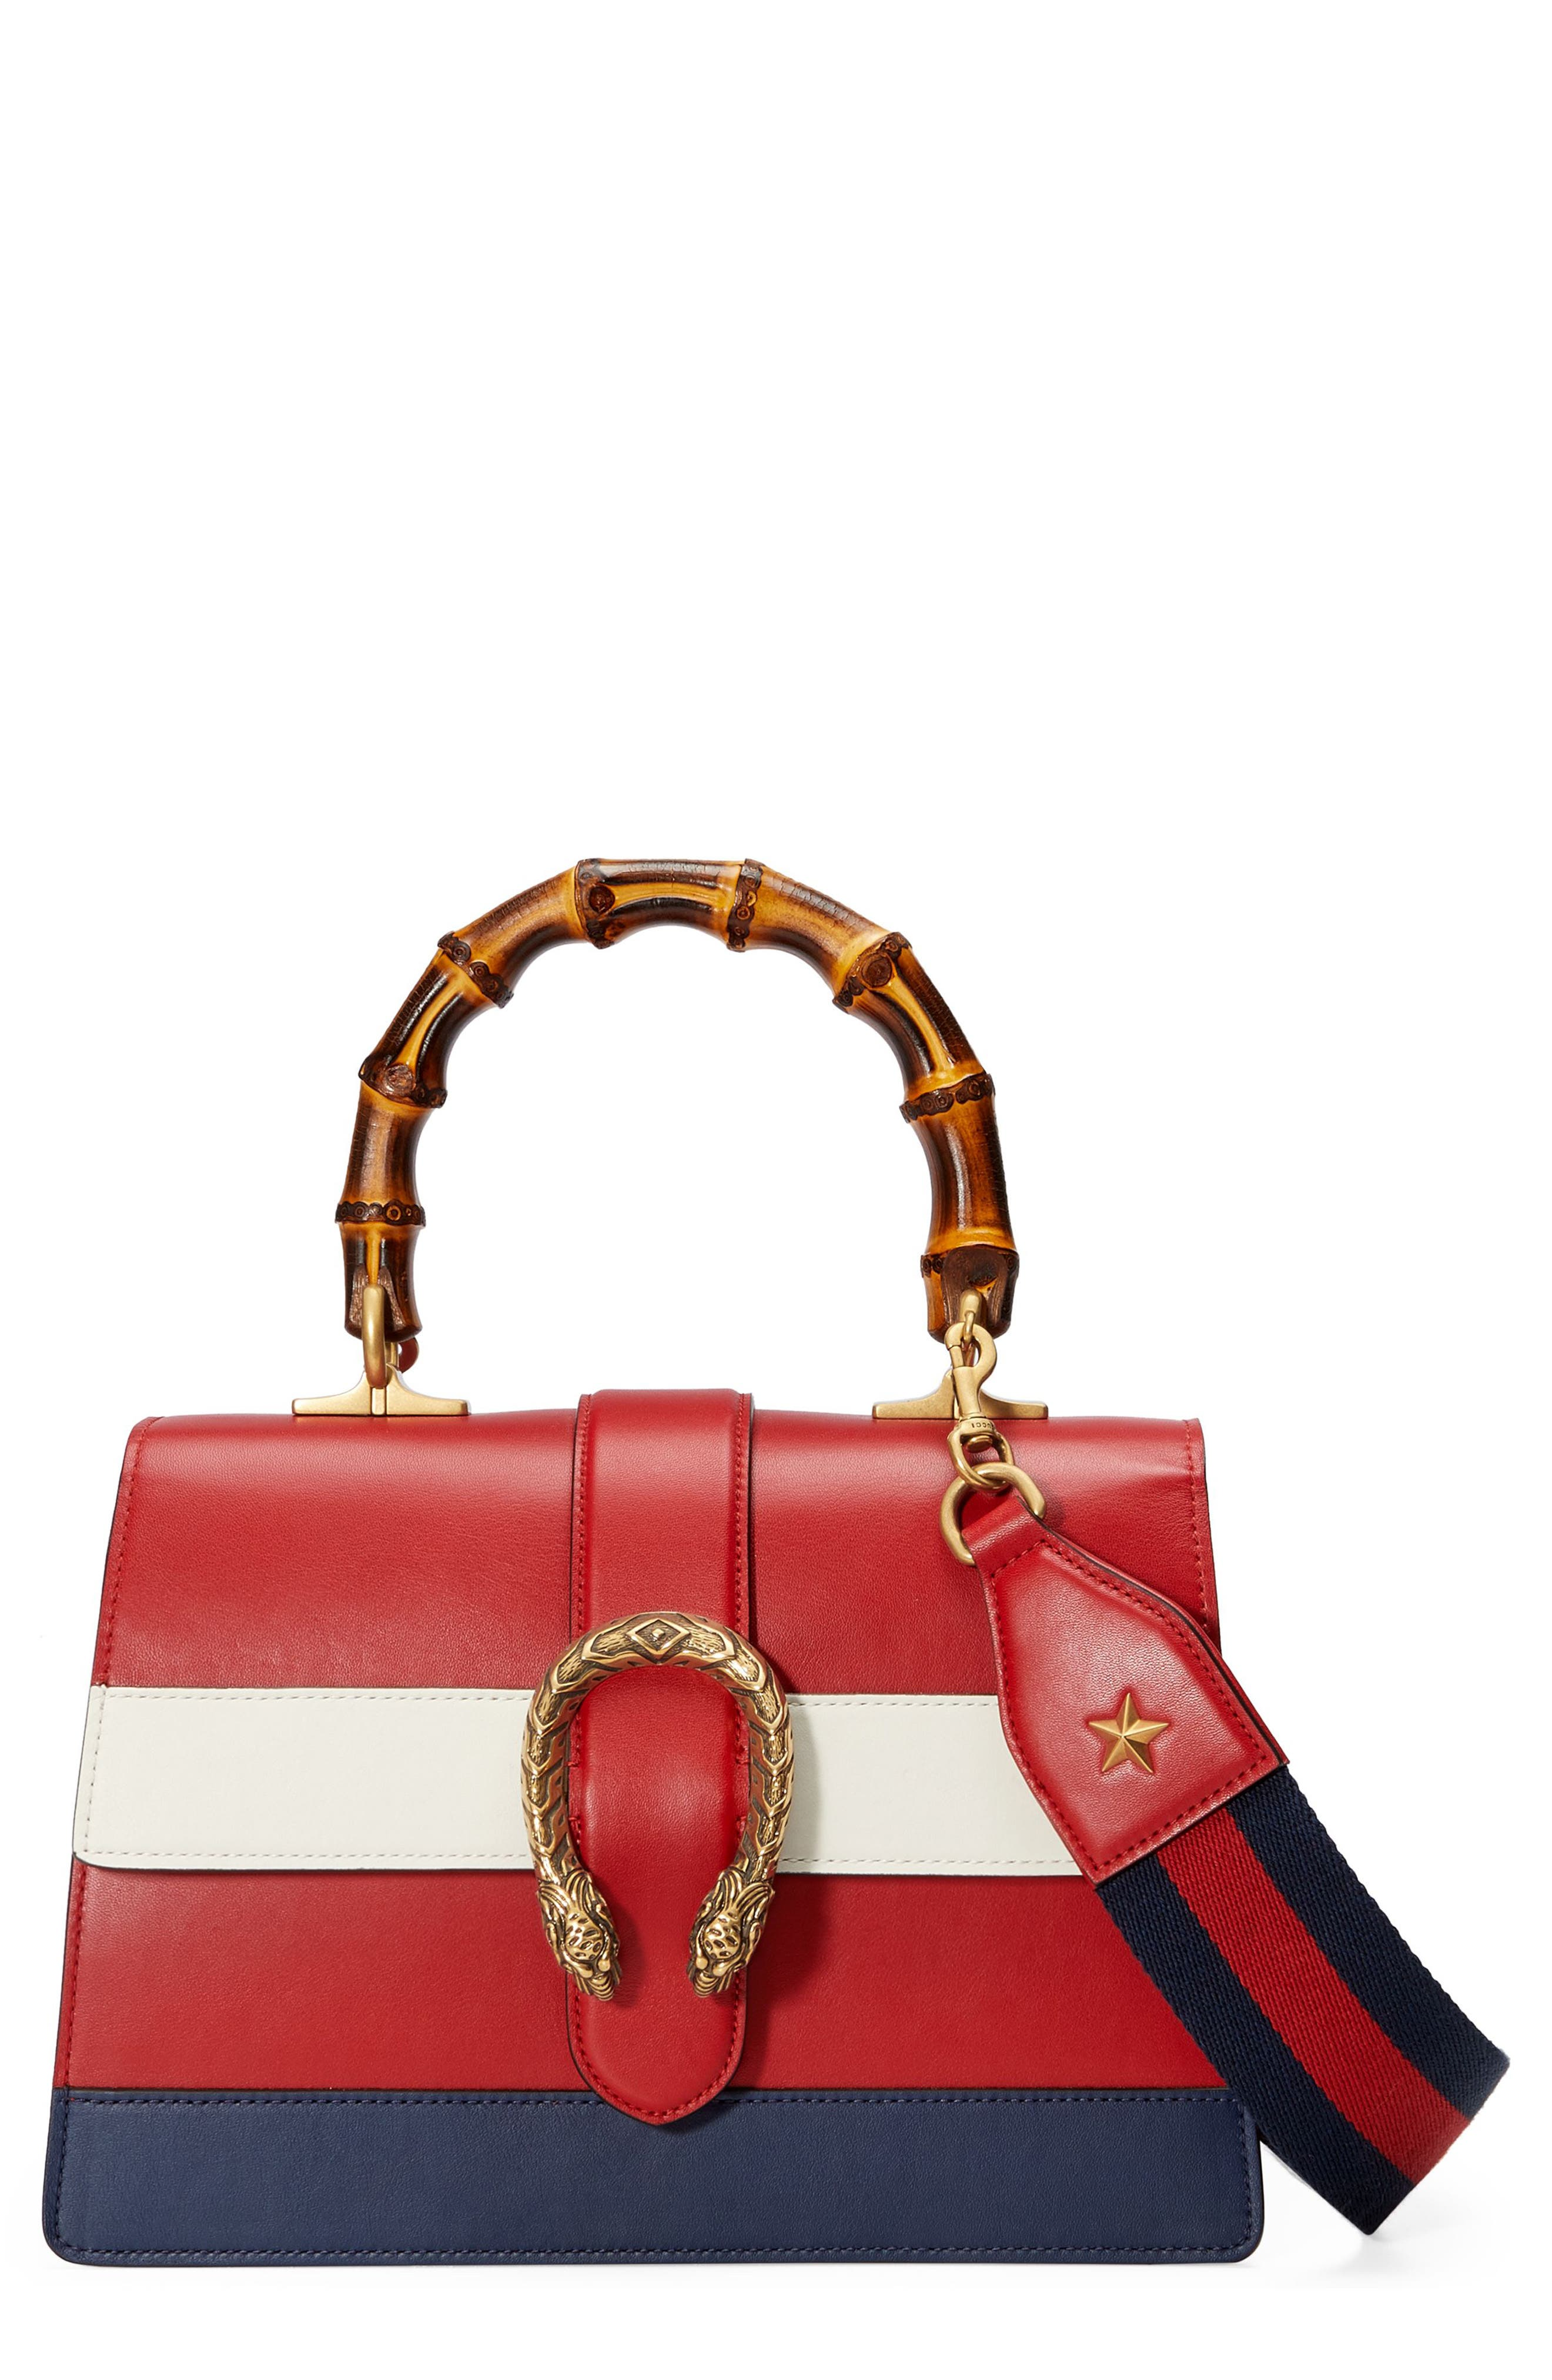 Small Dionysus Top Handle Leather Shoulder Bag,                             Main thumbnail 1, color,                             Red/ White/ Blue